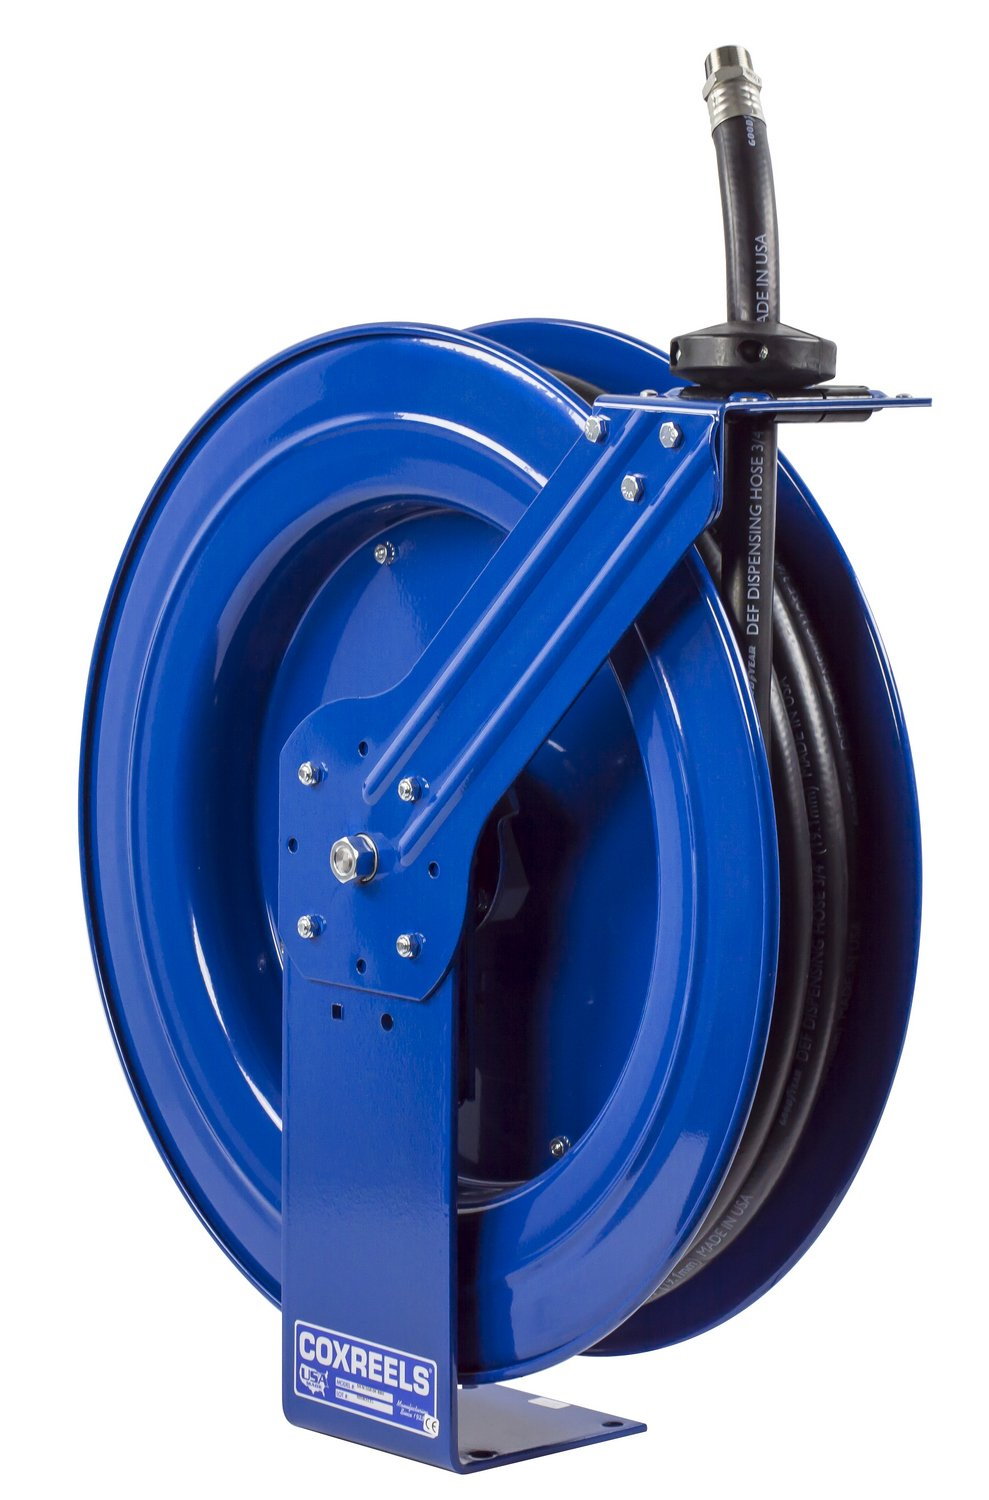 Coxreels SH-N-550-DF-BBX Spring Rewind Hose Reel for DEF applications: 3/4'' I.D., 50' hose, 300 PSI